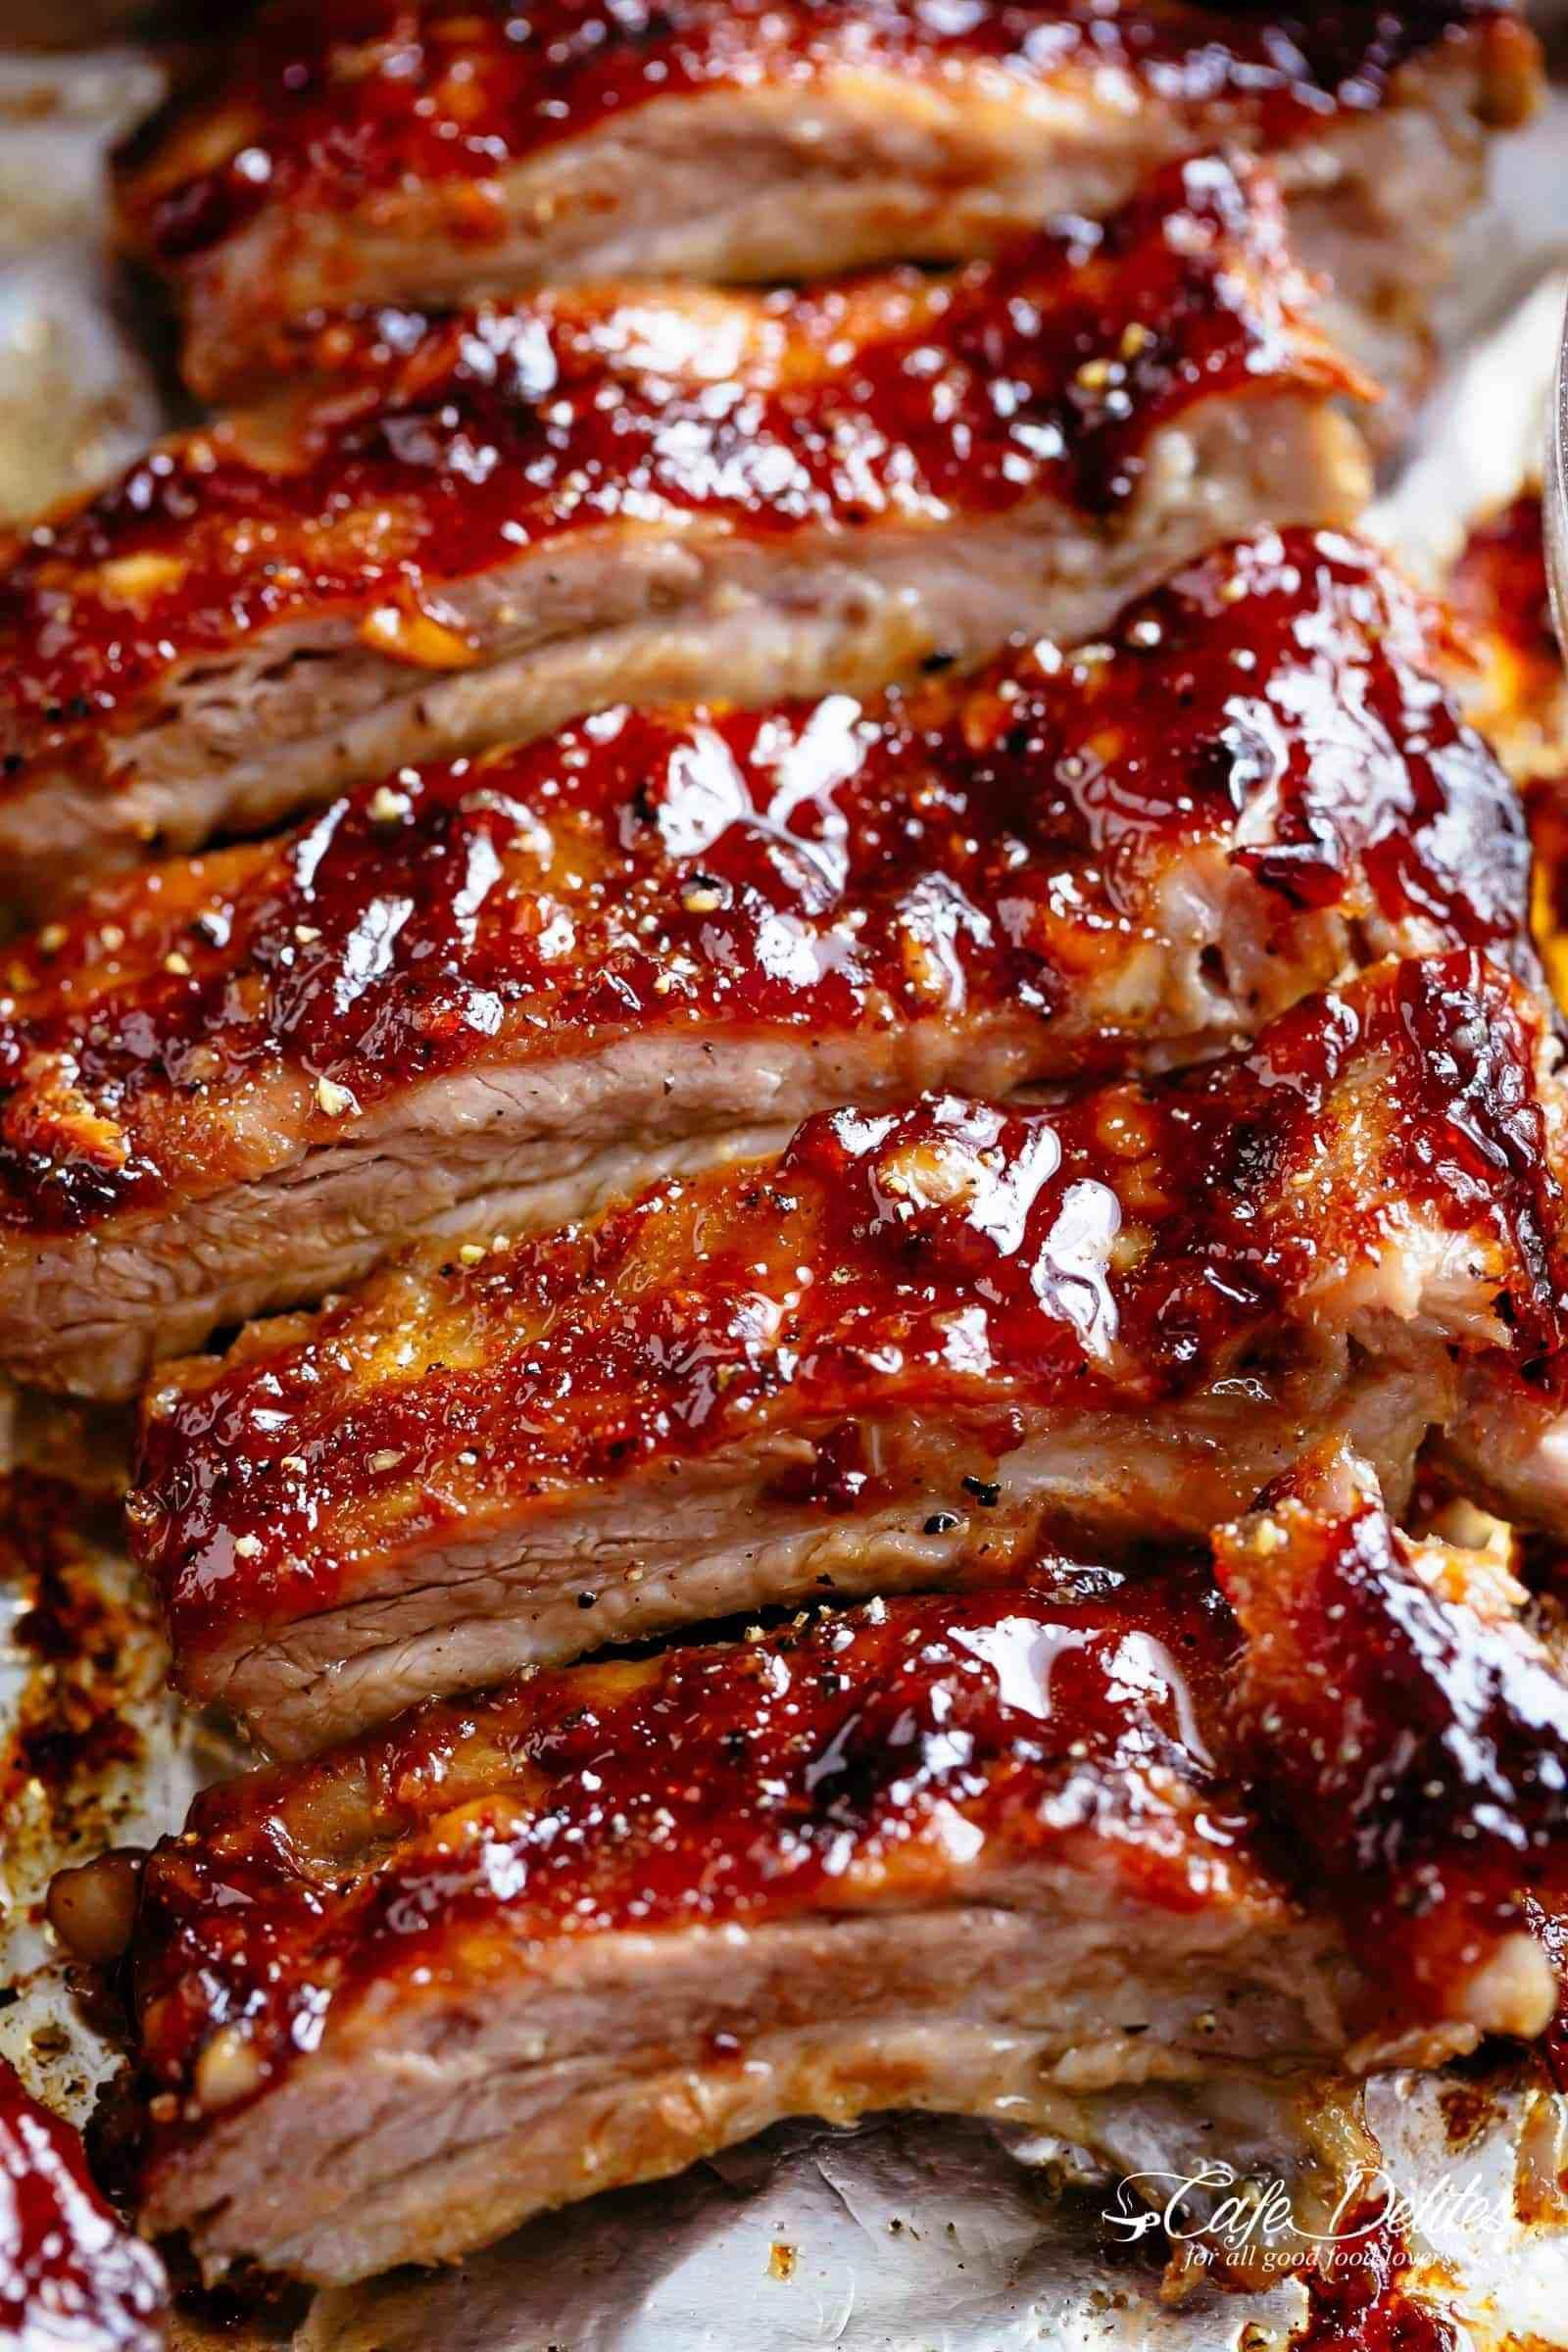 Oven Barbecue Ribs American Ribs Oven Baked and slathered in the most delicious barbecue sauce! |